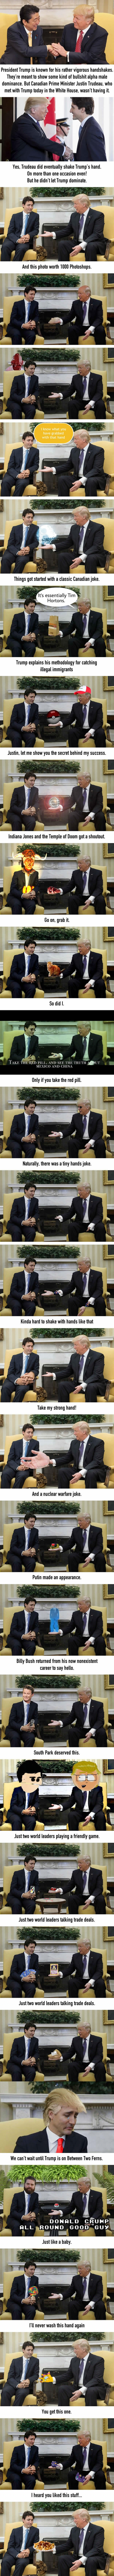 Photoshops of Justin Trudeau staring at Trump's hand